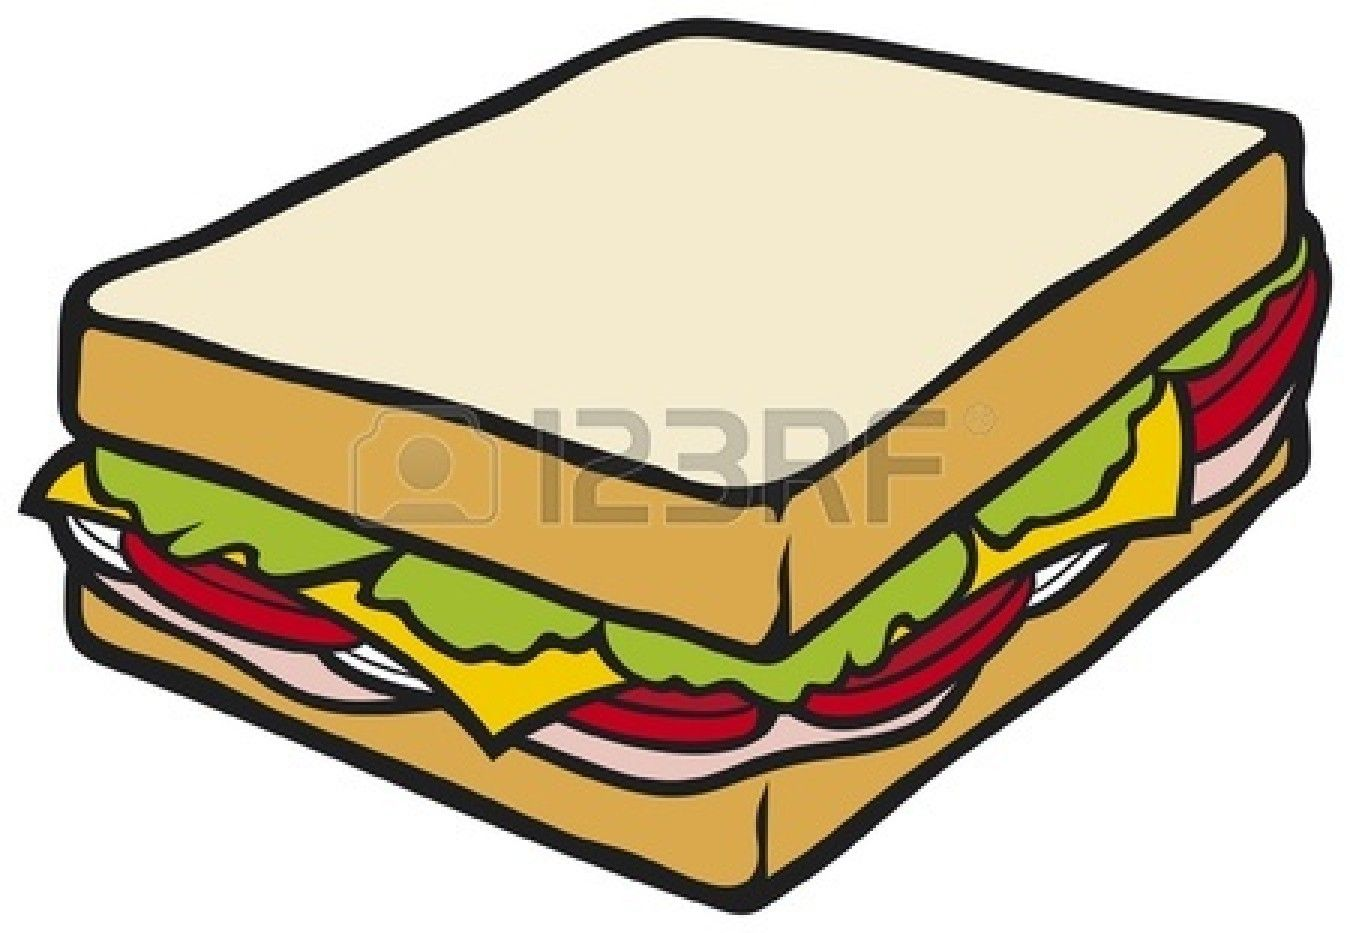 Cheese sandwich collection grilled. Clipart bread sandwhich